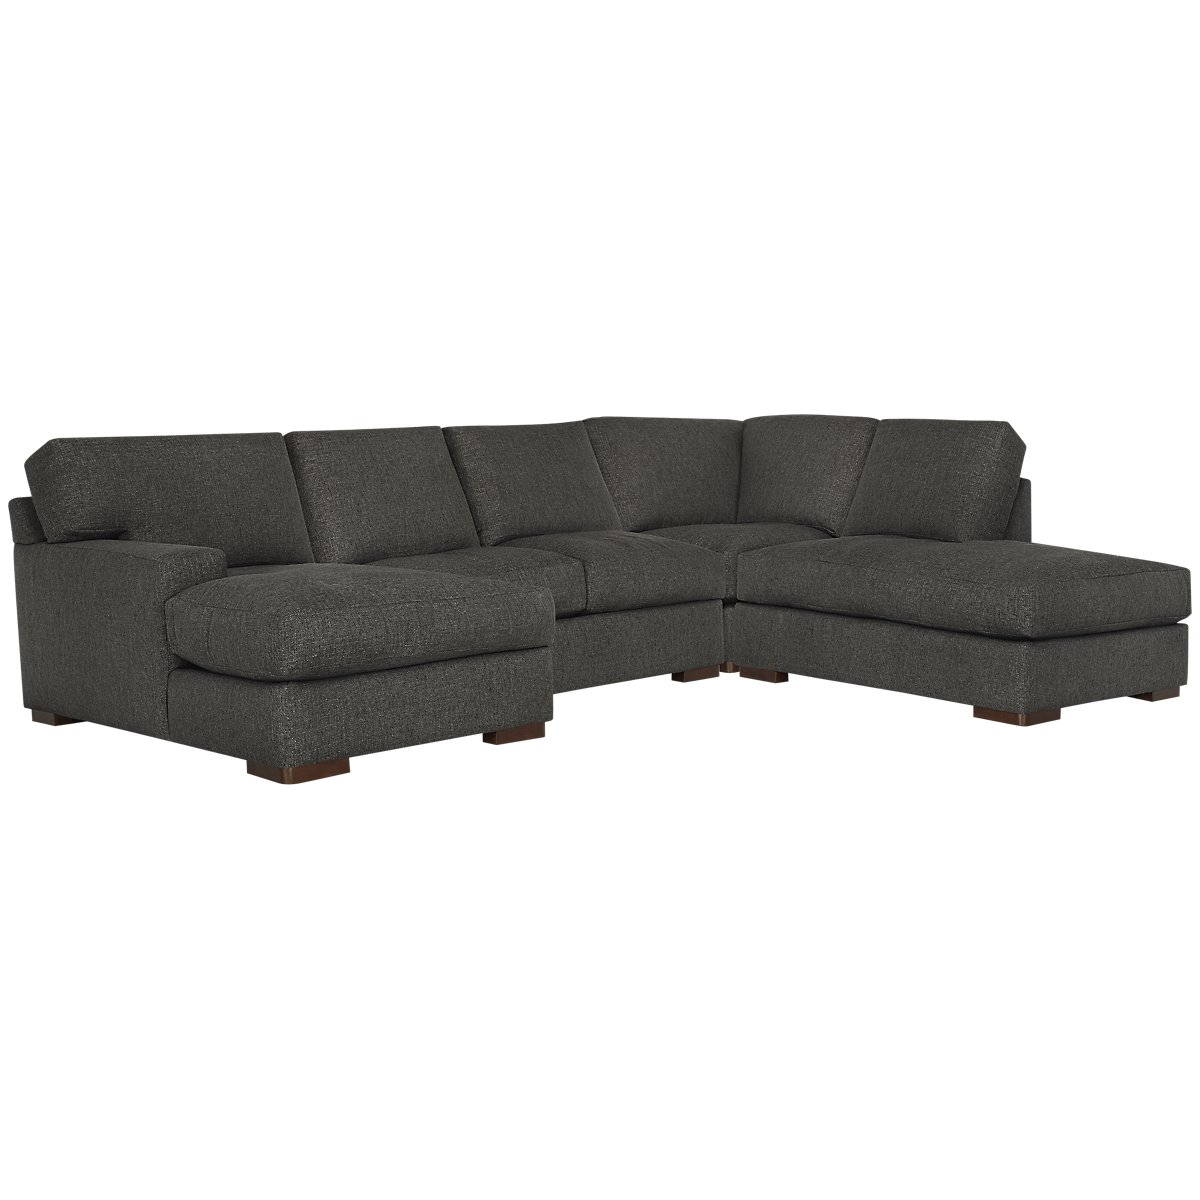 Veronica Dark Brown Fabric Small Right Bumper Sectional